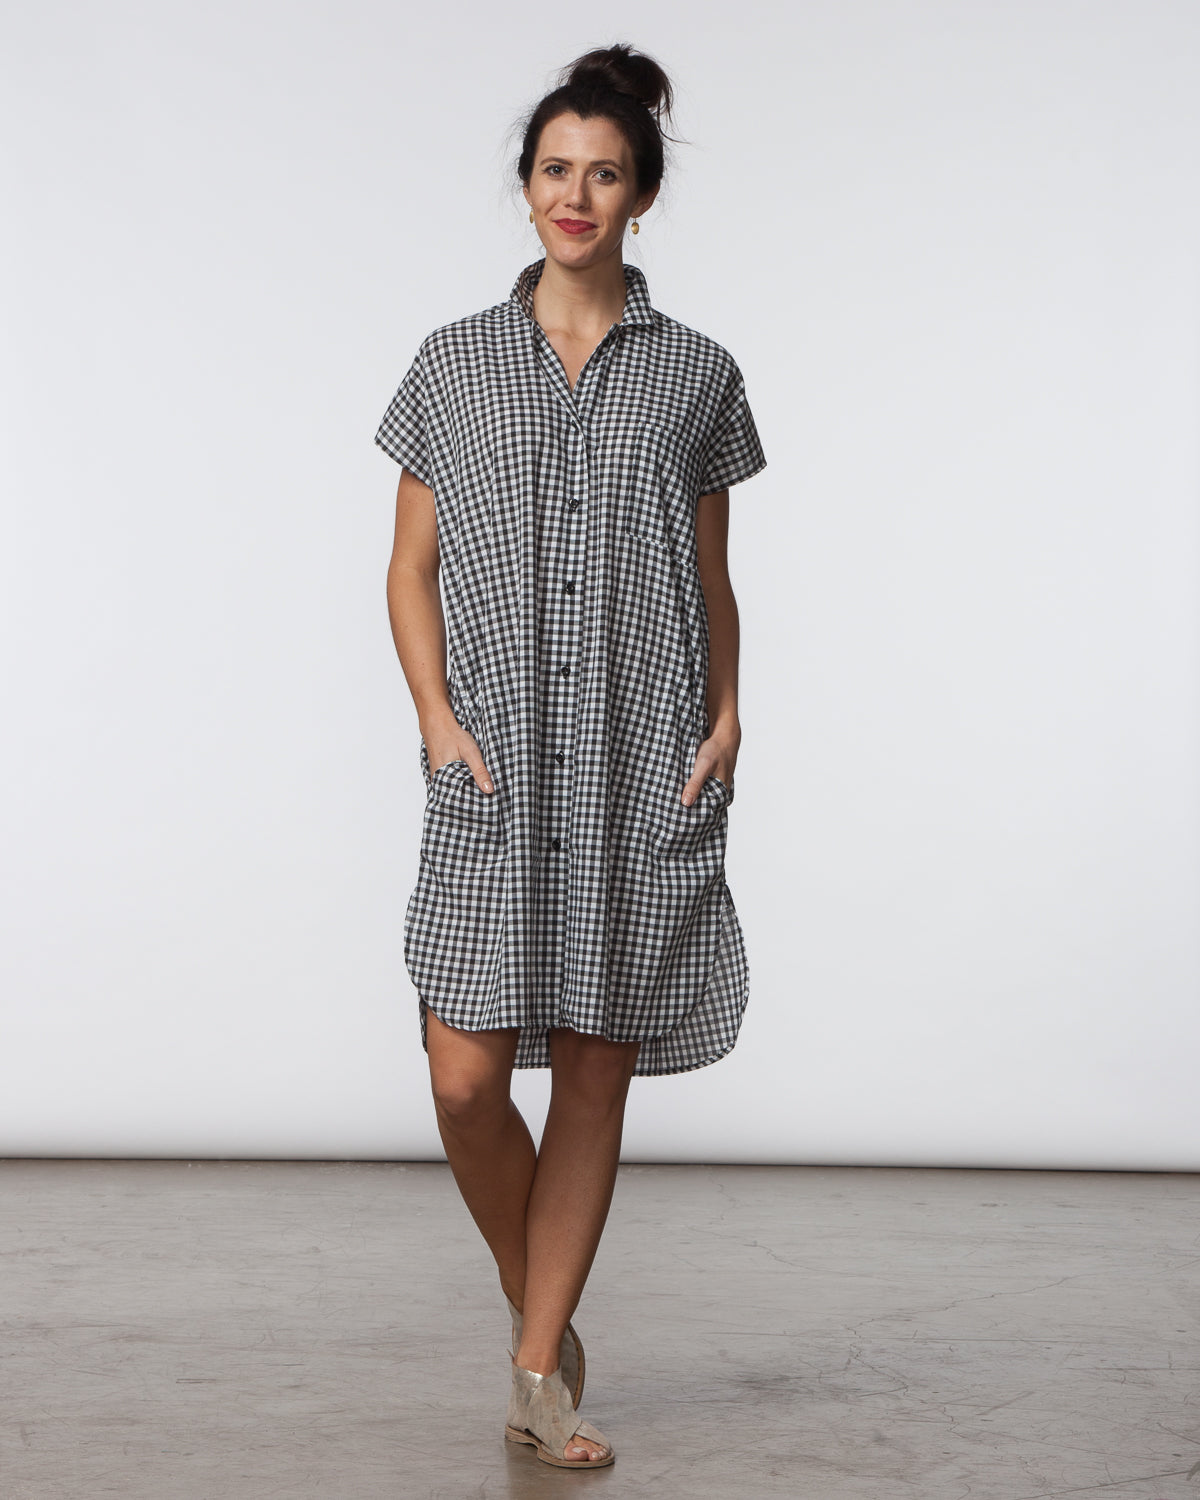 R Dress - Black & White Gingham